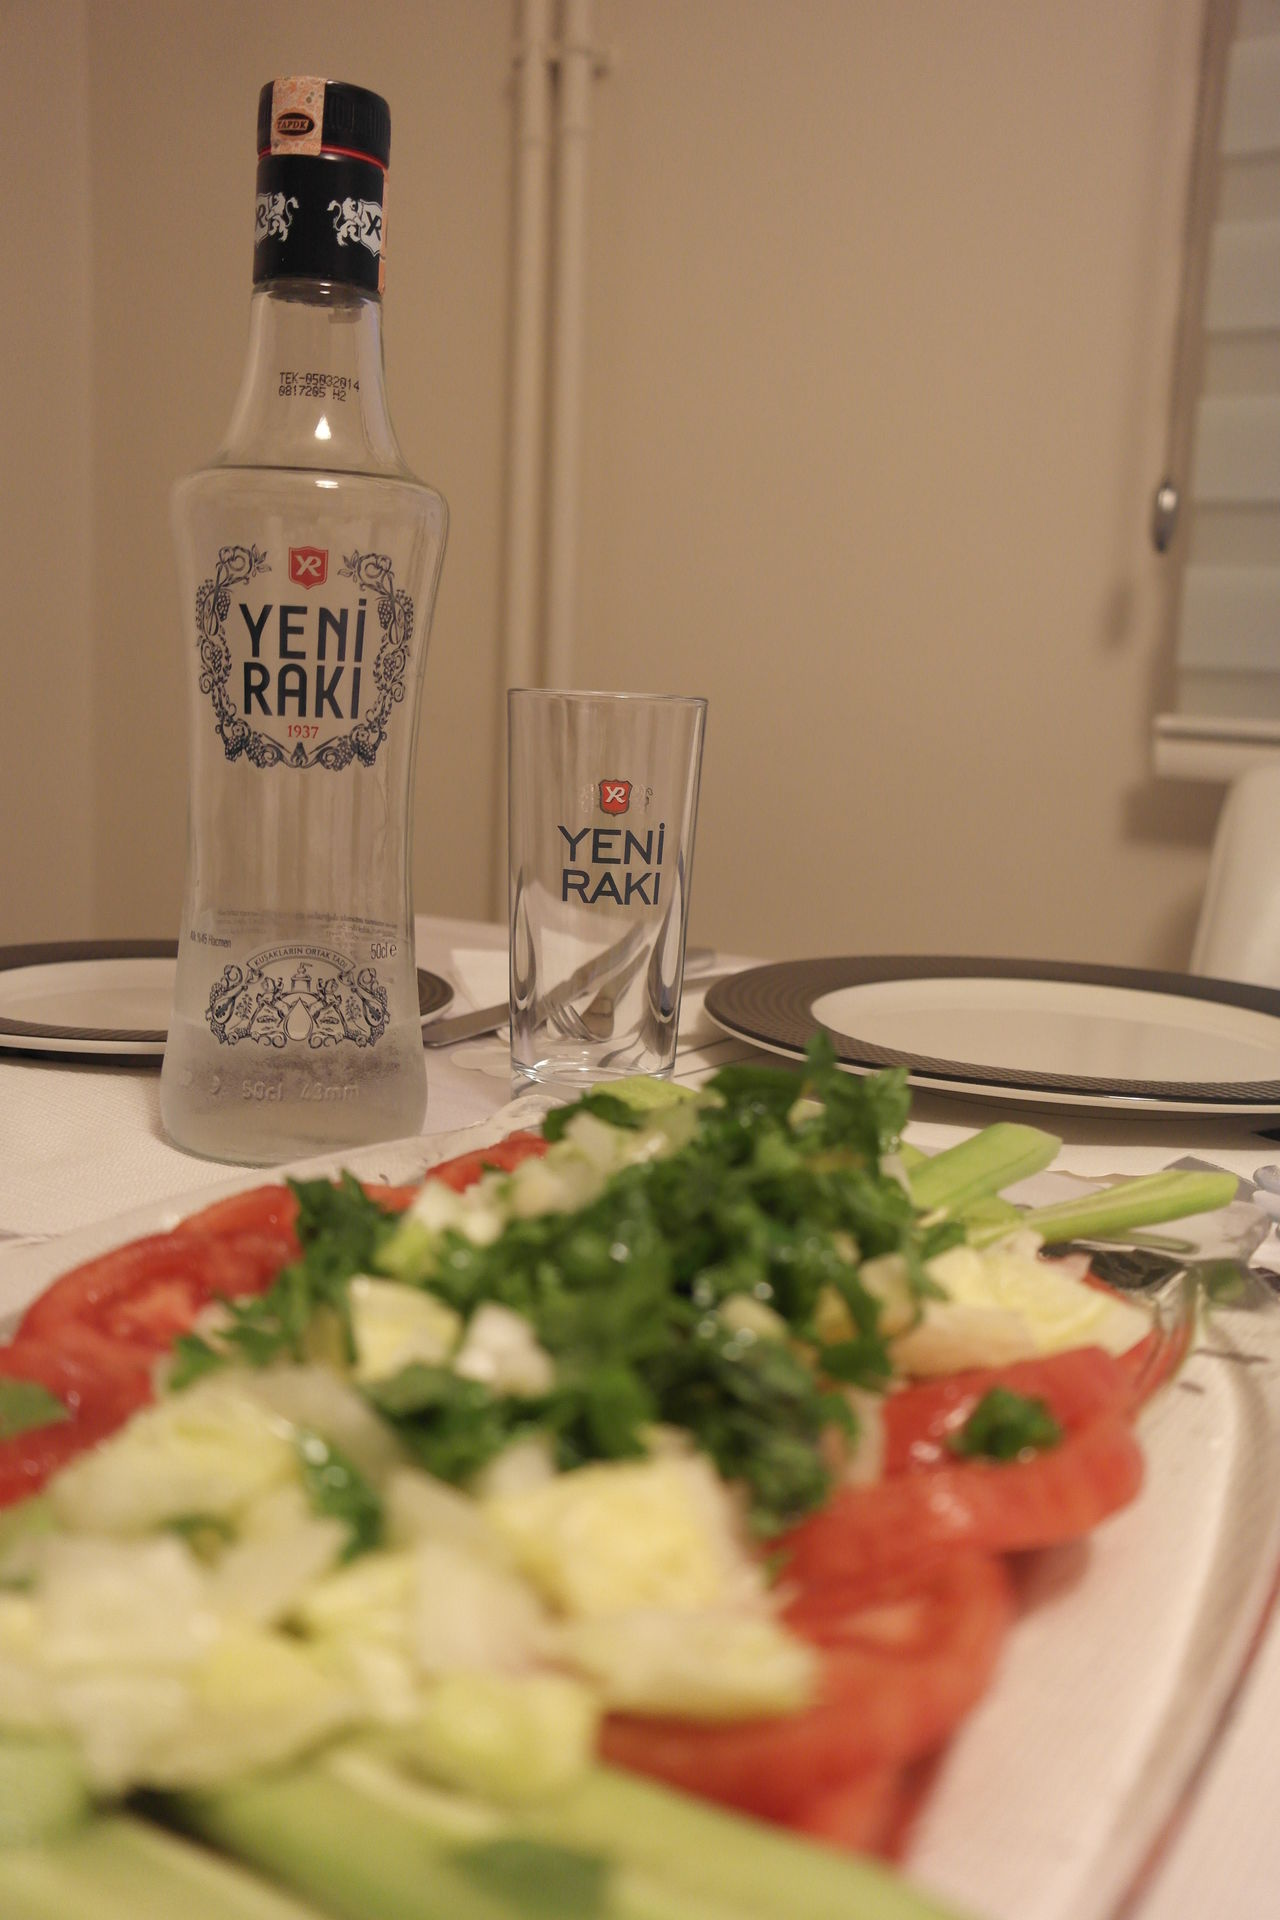 Alcohol Drink Drinking Glass Enjoying A Meal Food And Drink Food And Drink Glass Indoors  Plate RAKI Refreshment Still Life Table Turkish Raki Homemade Homecooked Homemade Food Homecooking